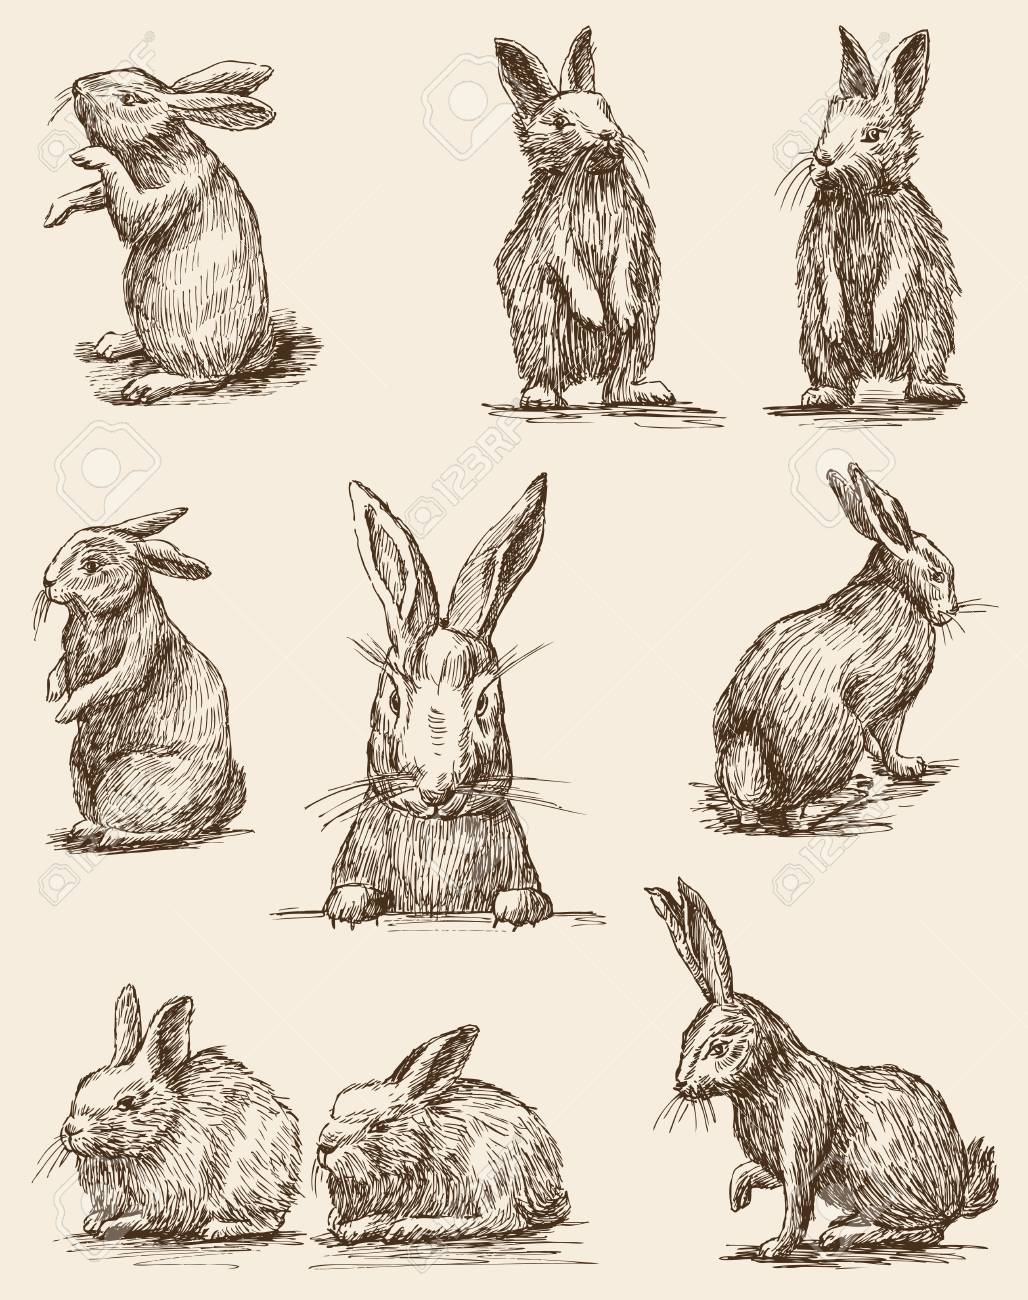 The vector drawings of the different vintage rabbits.